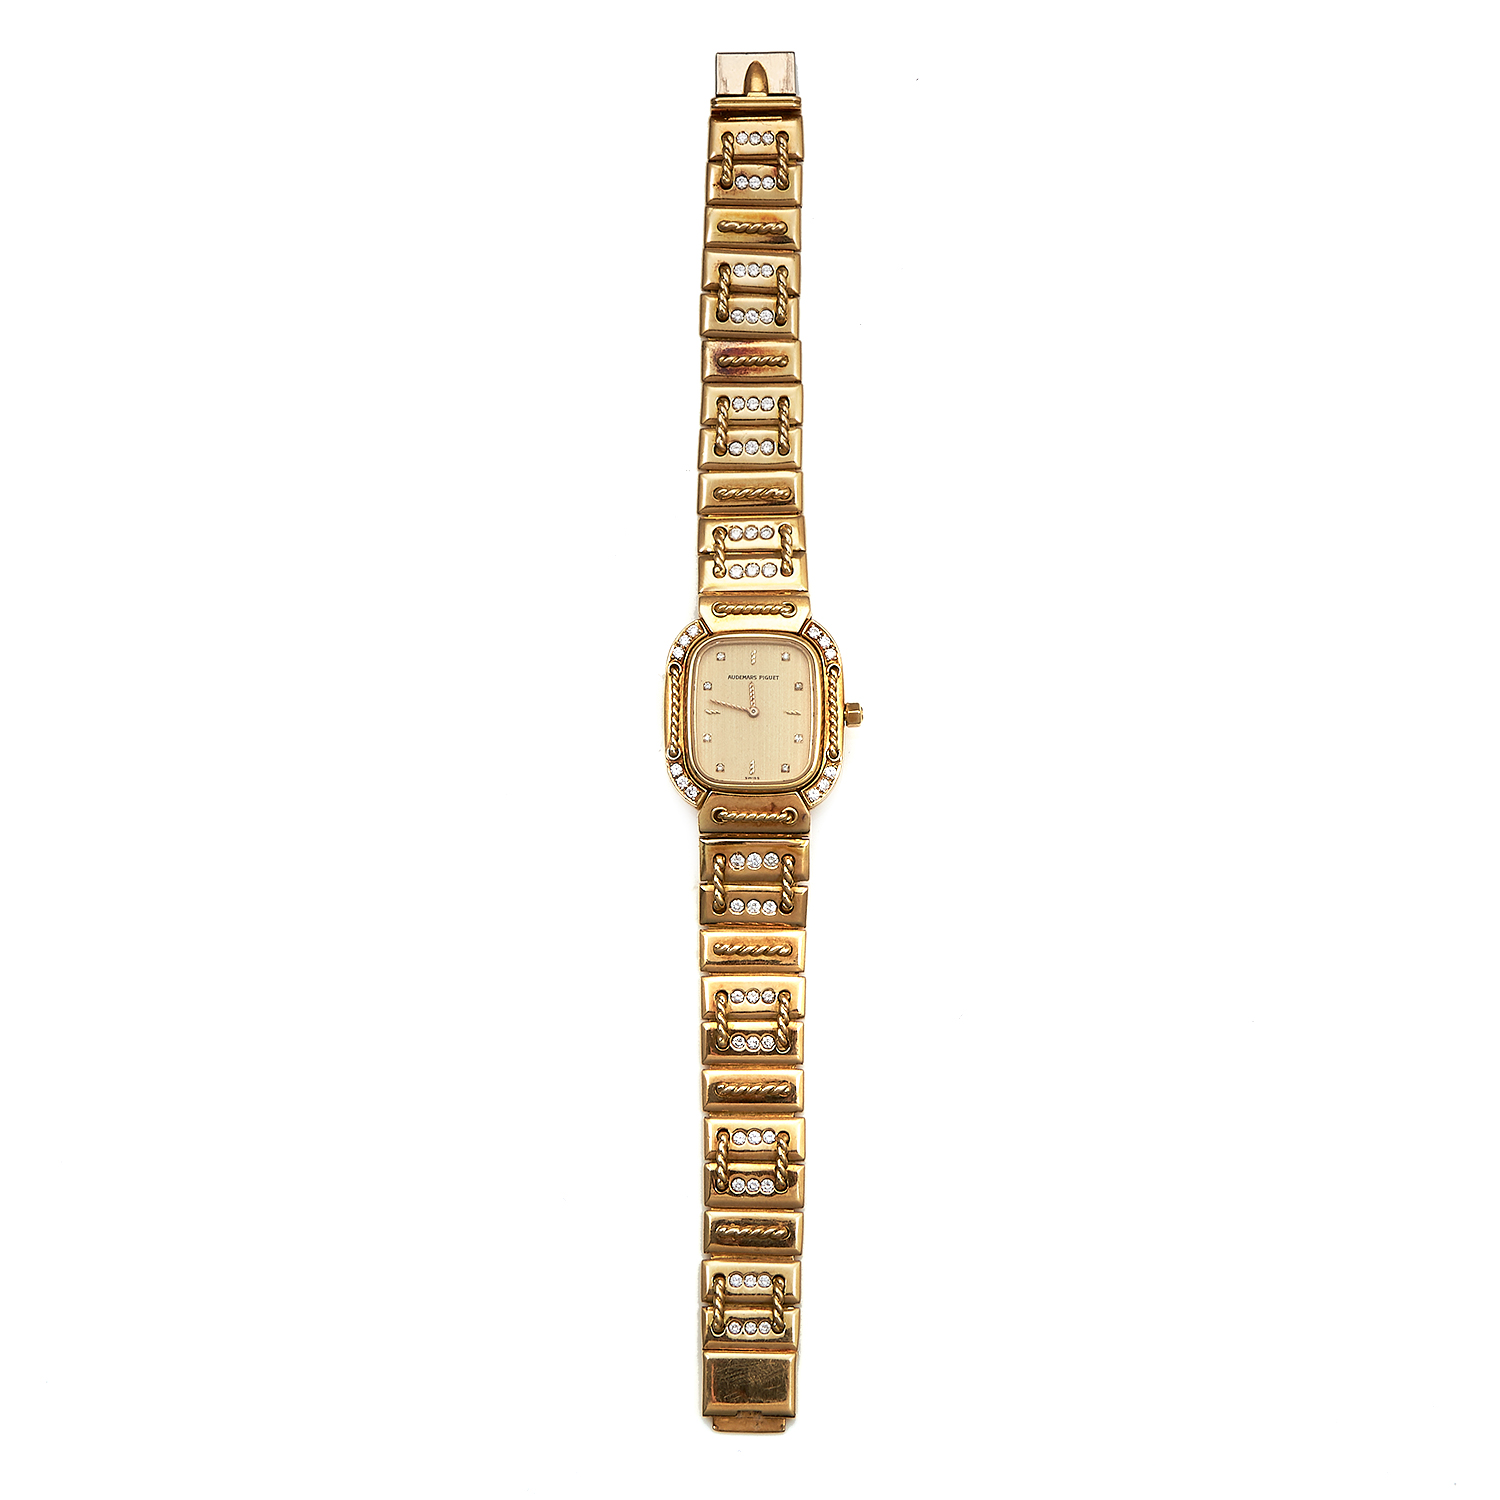 A LADIES DIAMOND WRIST WATCH, AUDEMARS PIGUET in 18ct yellow gold, the rounded rectangular 26mm case